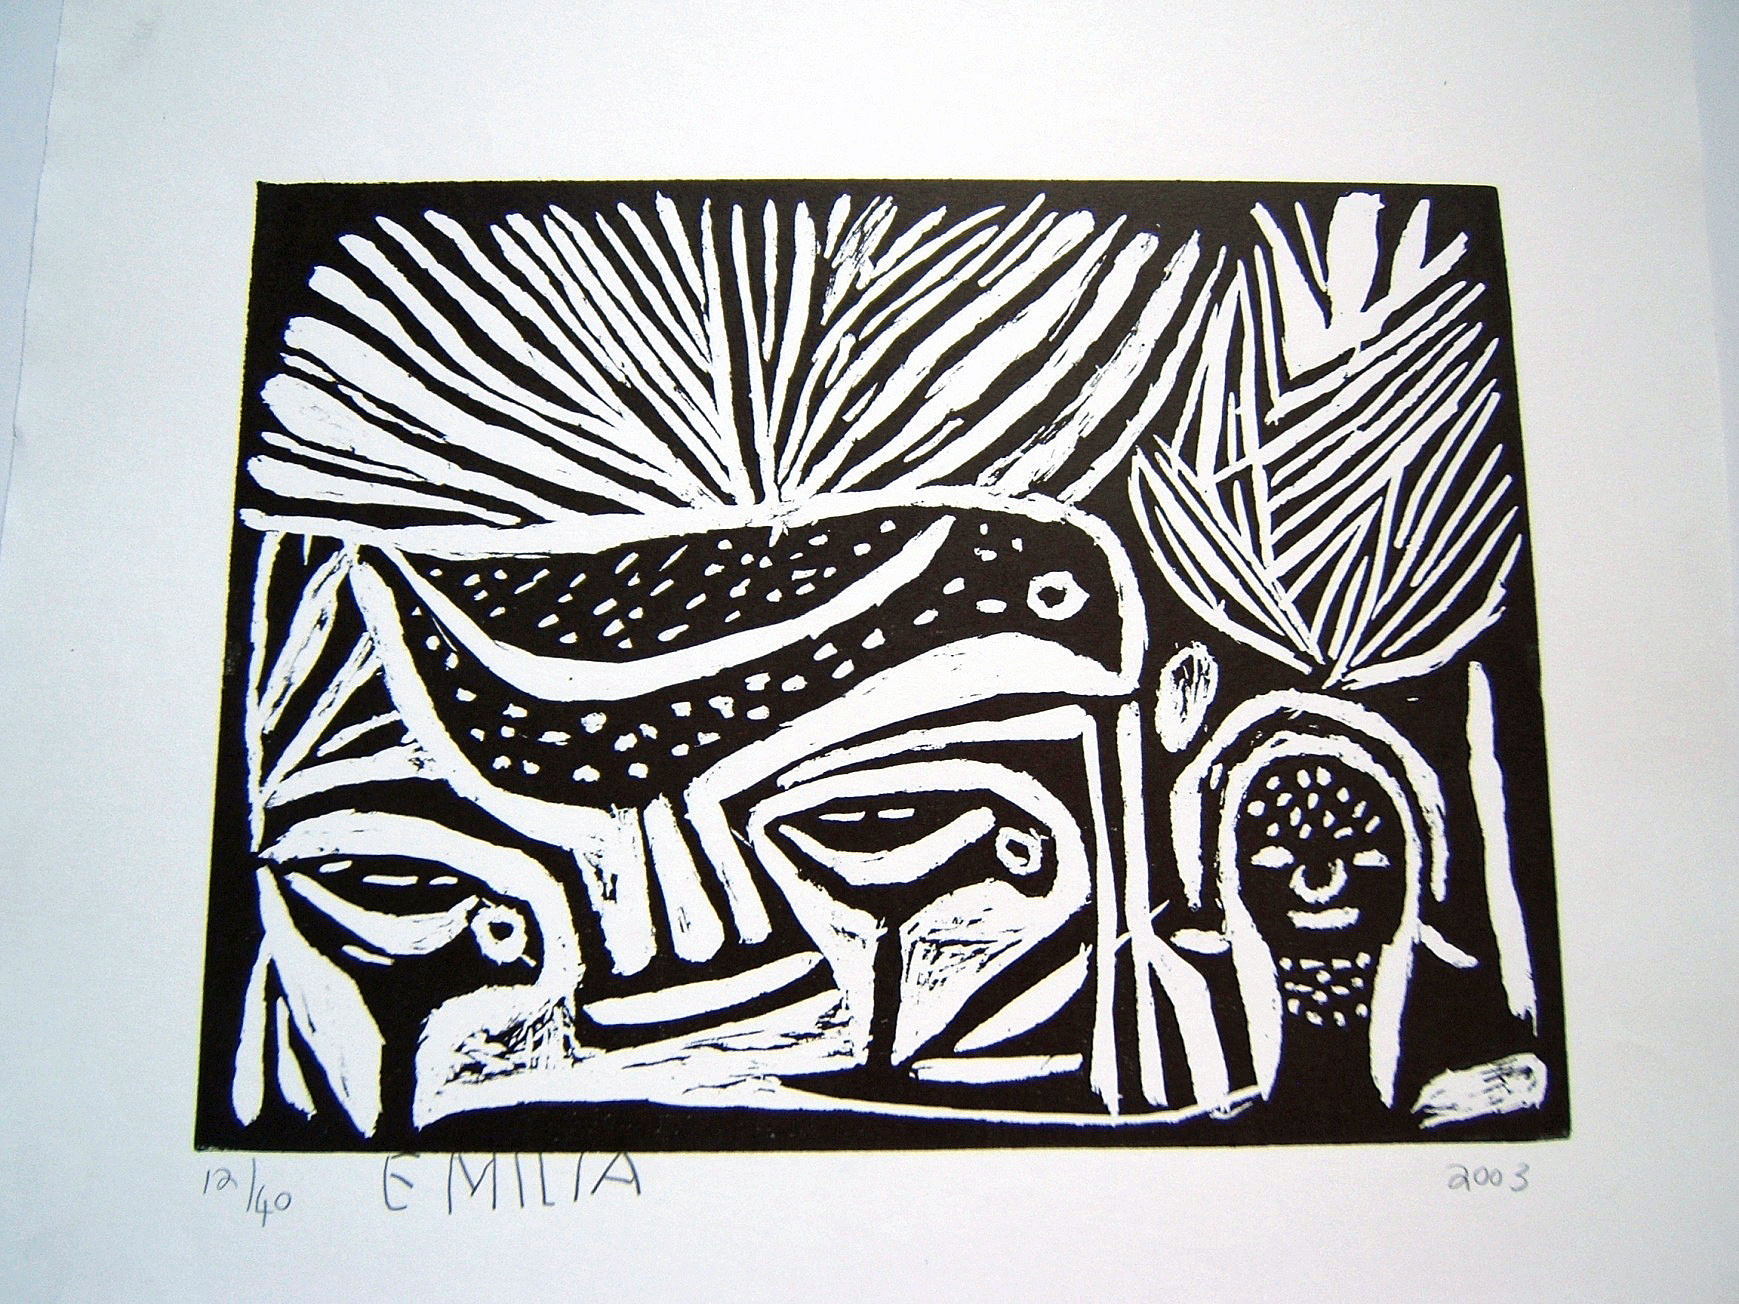 contemporary African art, lino cut, monochrome, signed, limited edition, bird